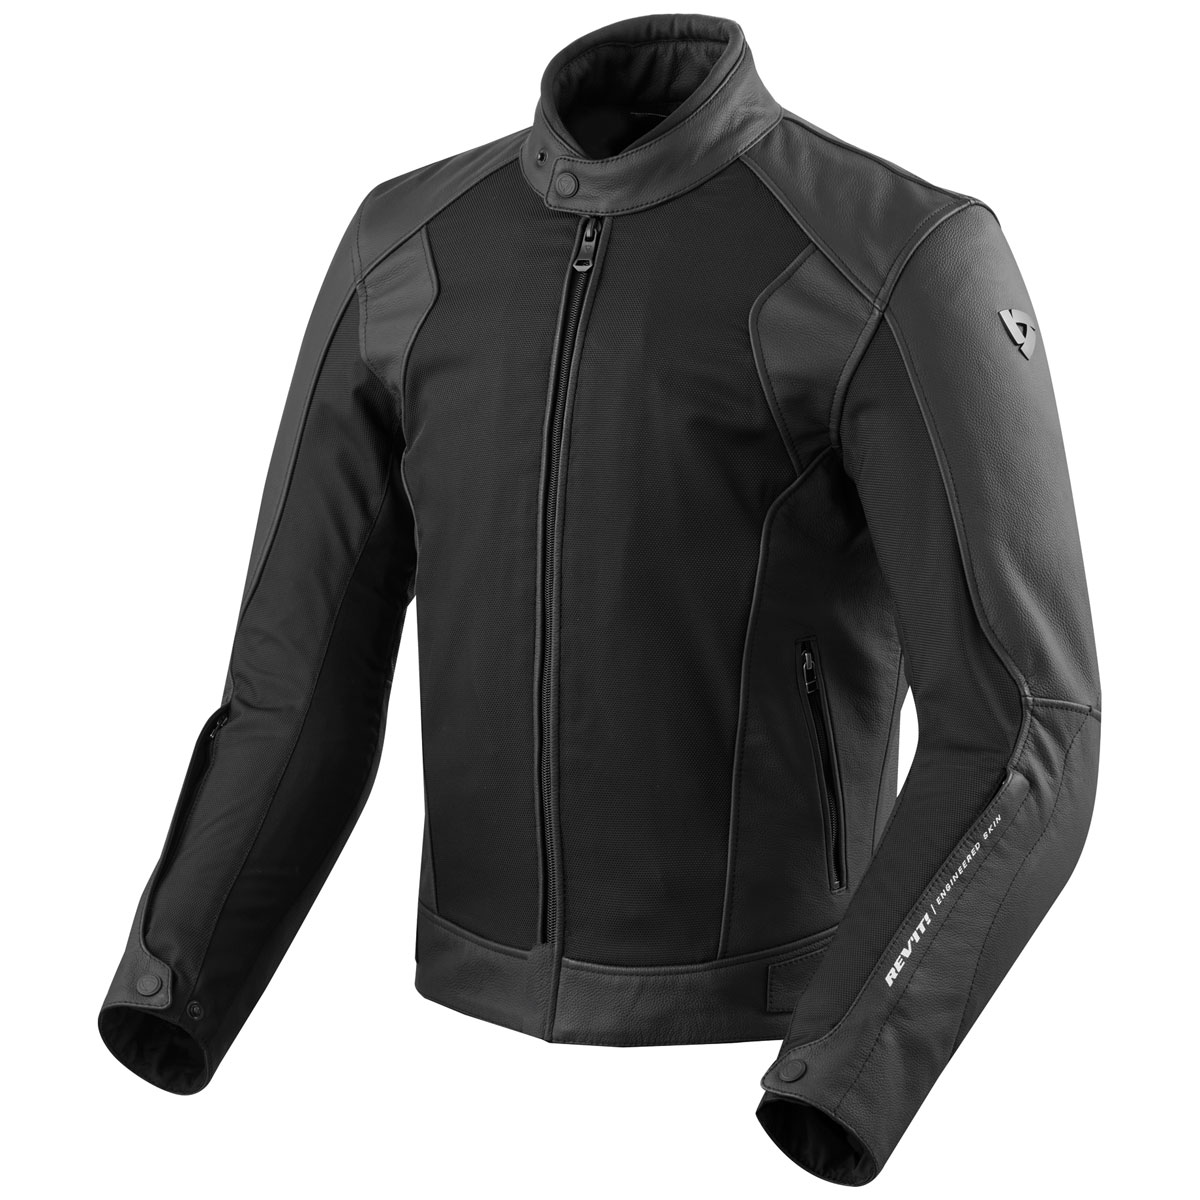 REV'IT! Men's Ignition 3 Black Jacket